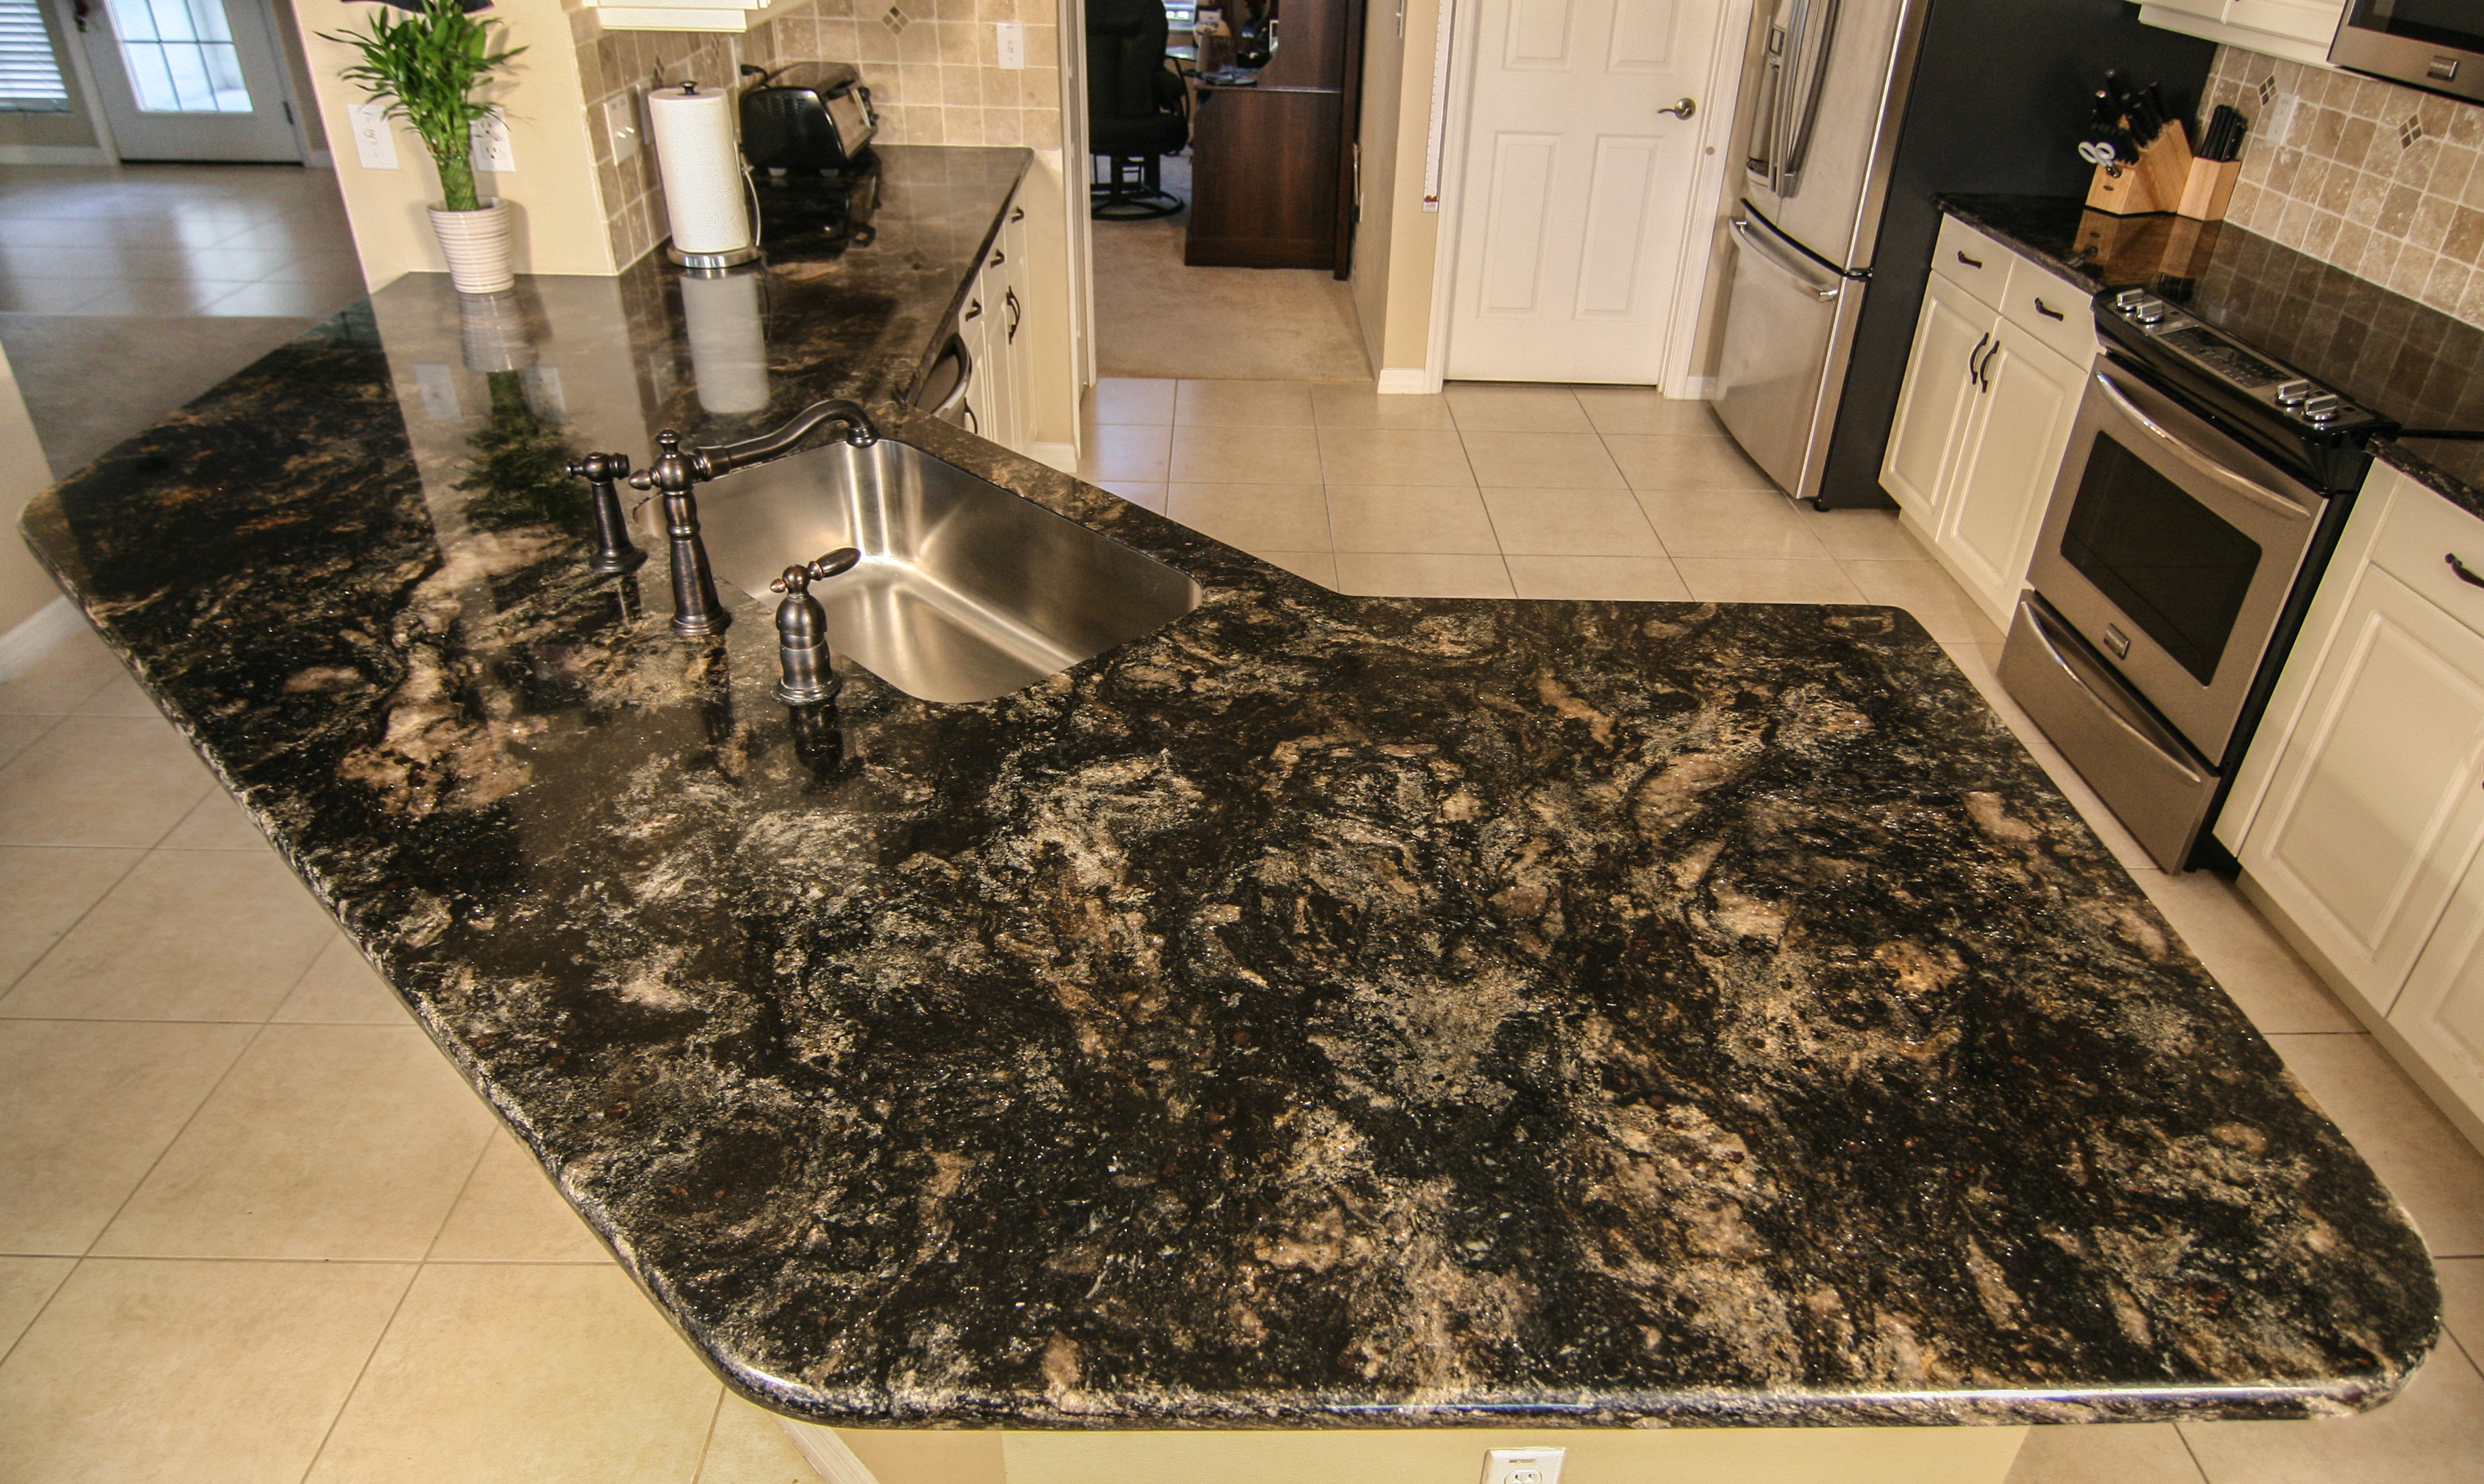 ... Countertop additionally Cpro. on commercial kitchen countertops